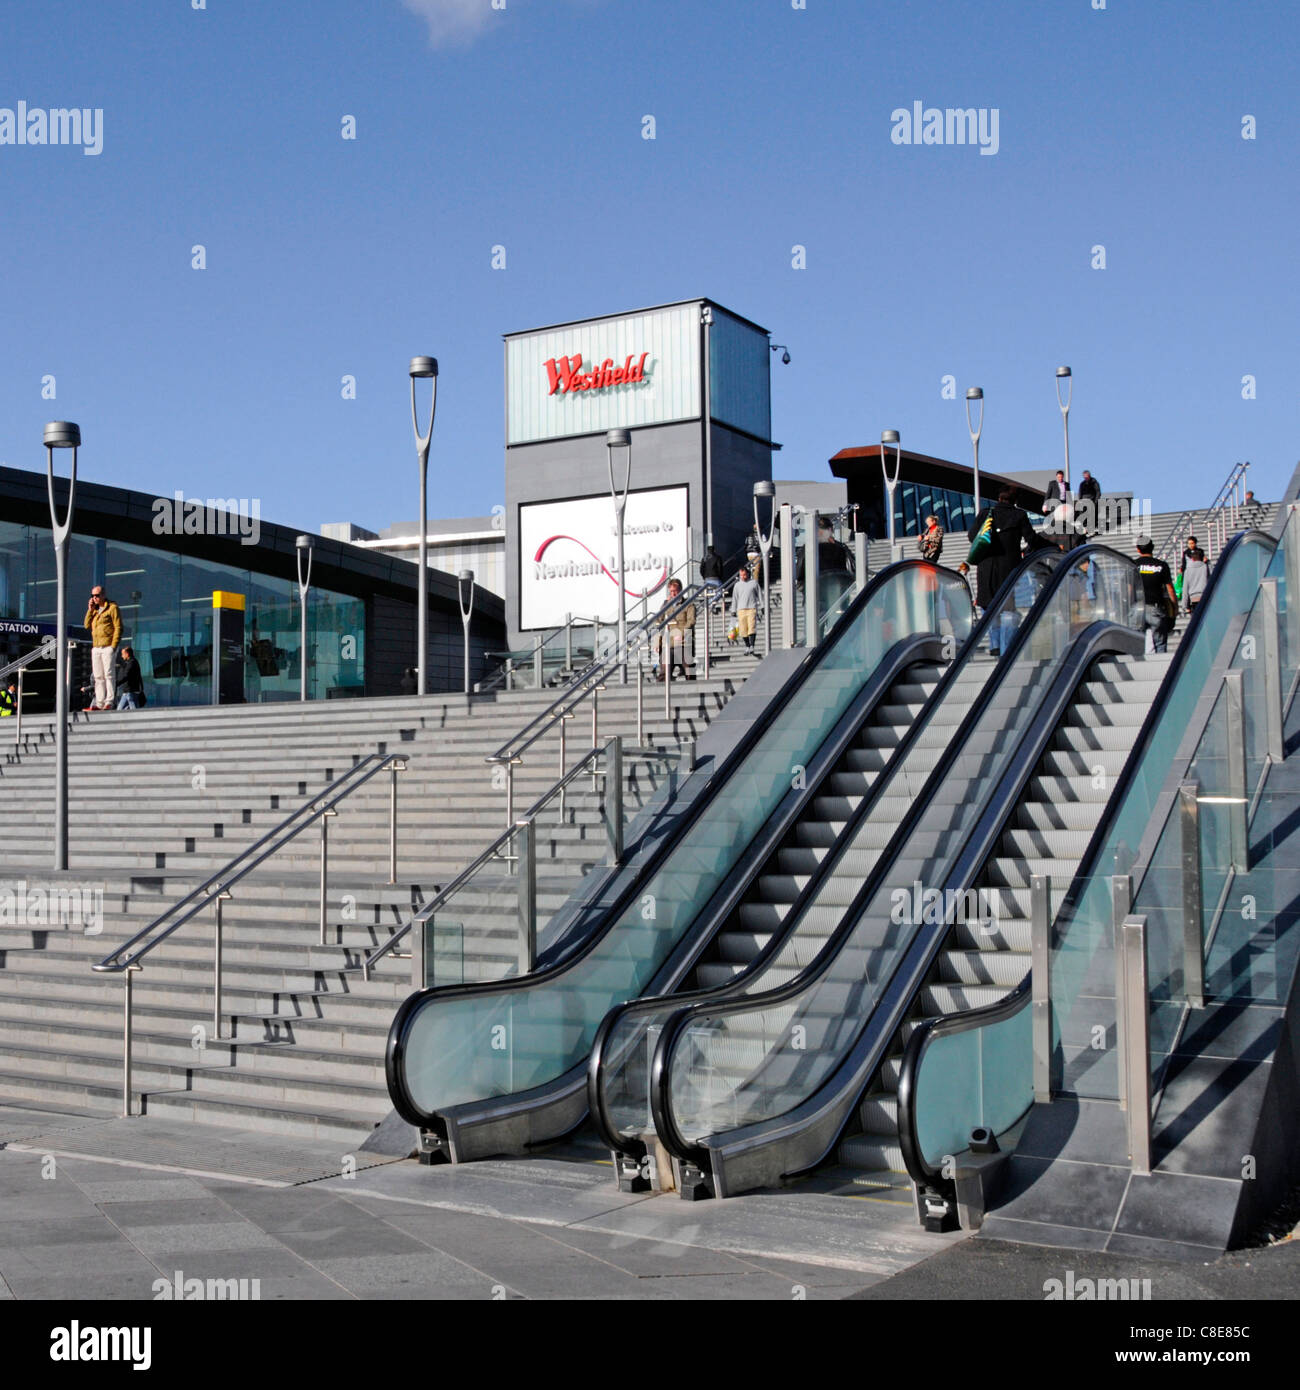 Early morning view stone steps with handrails & outdoor escalators leading to the Westfield shopping malls at - Stock Image